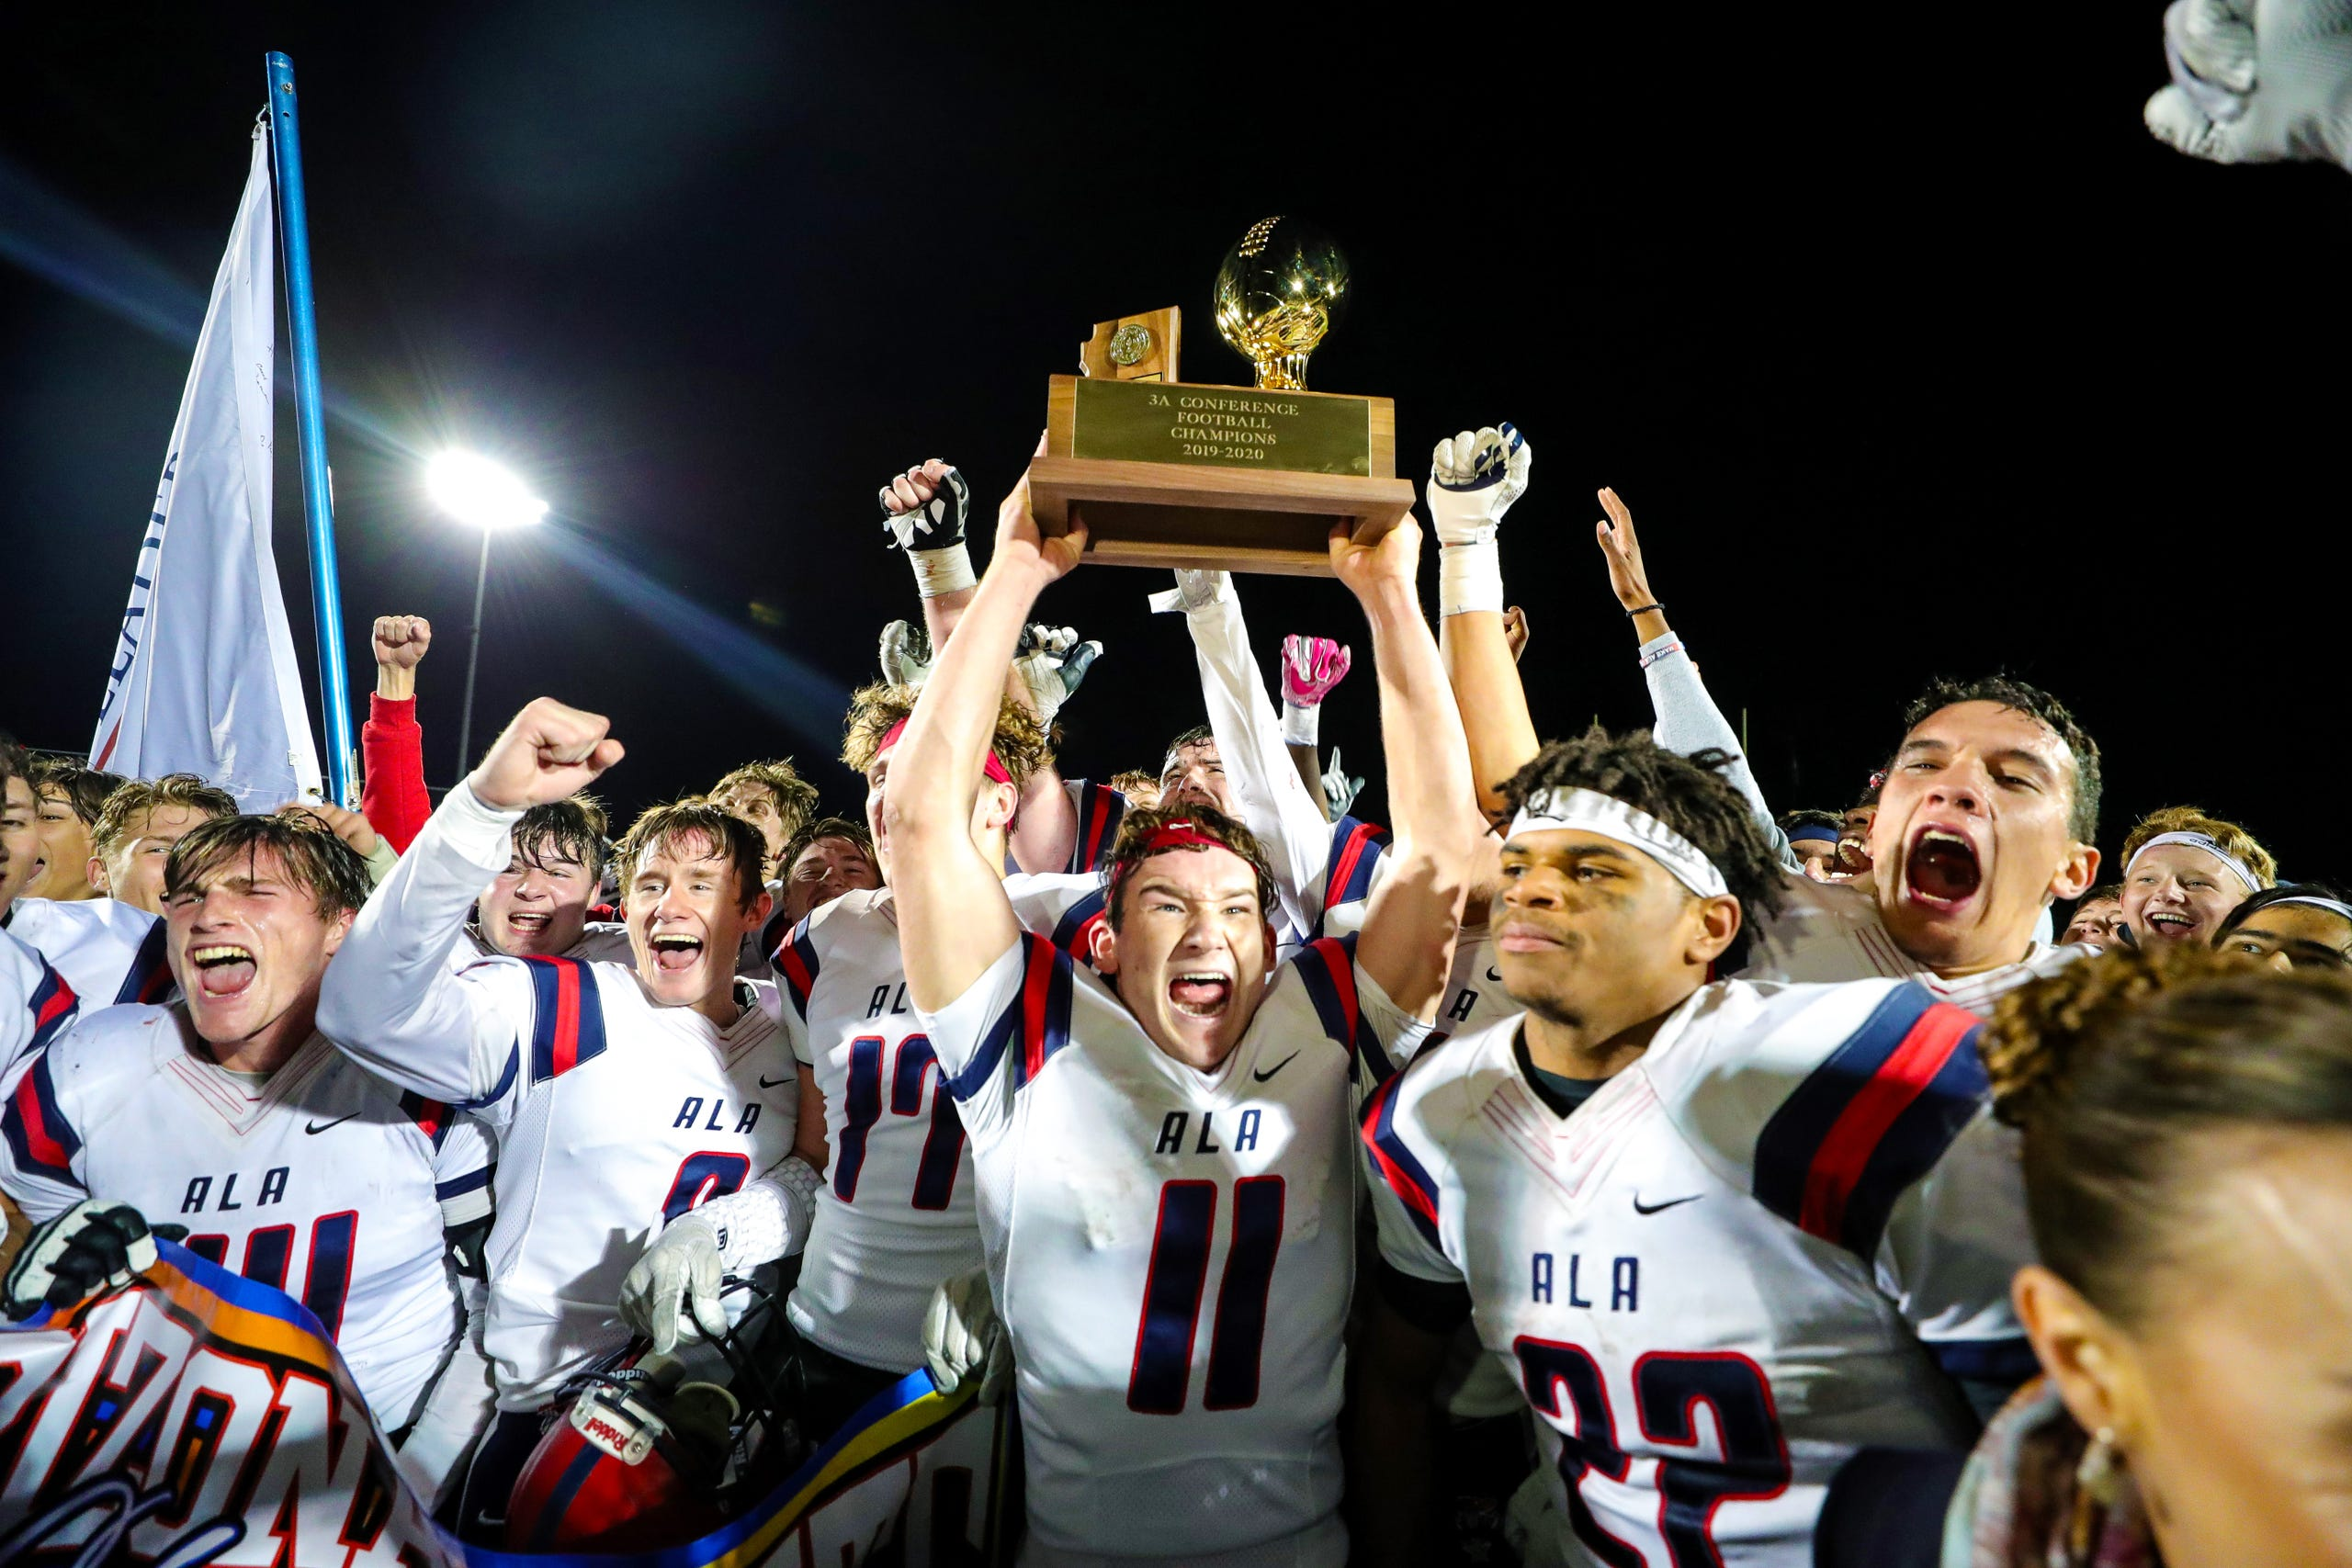 arizona high school football state championship 2020